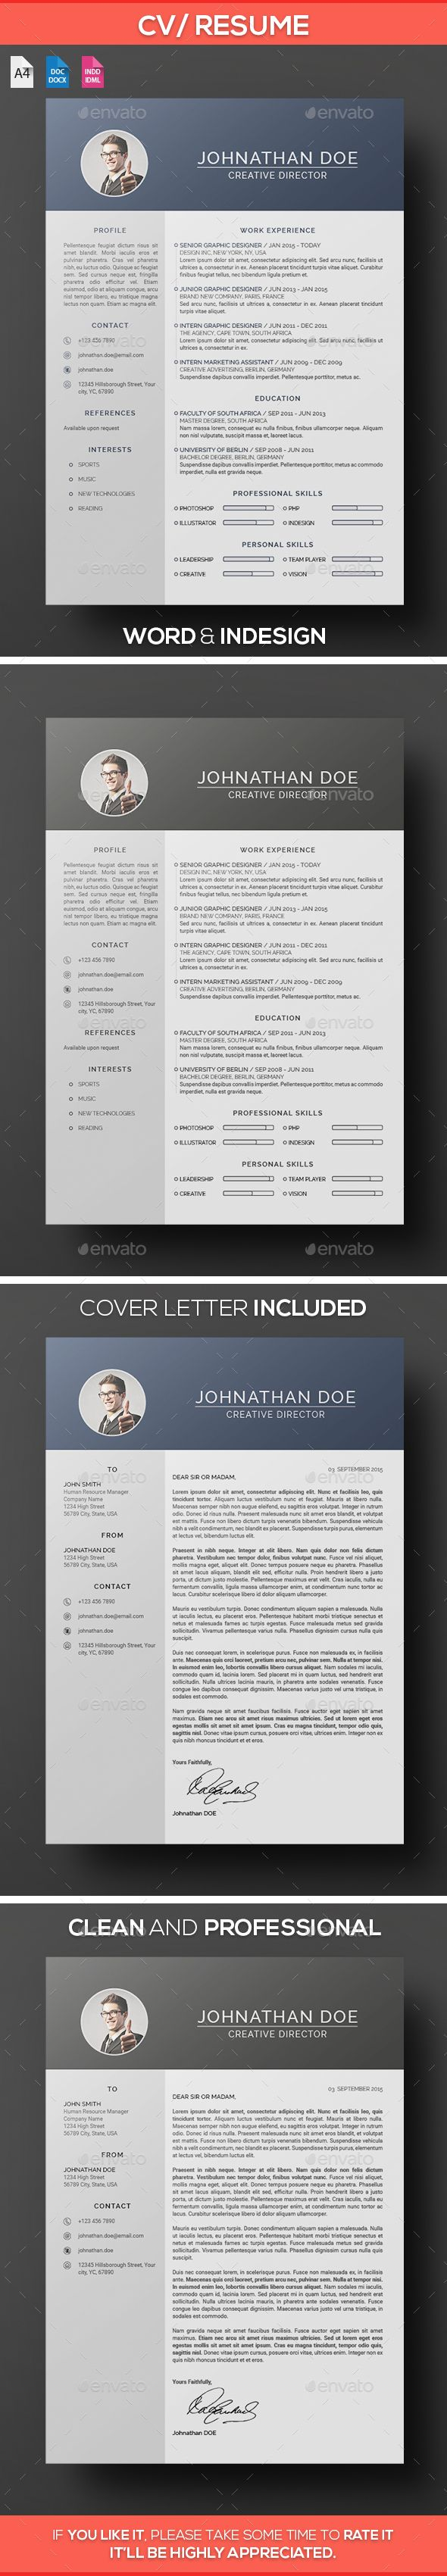 Clean Resume / CV Template InDesign INDD #design Download: http://graphicriver.net/item/clean-resumecv/13686023?ref=ksioks